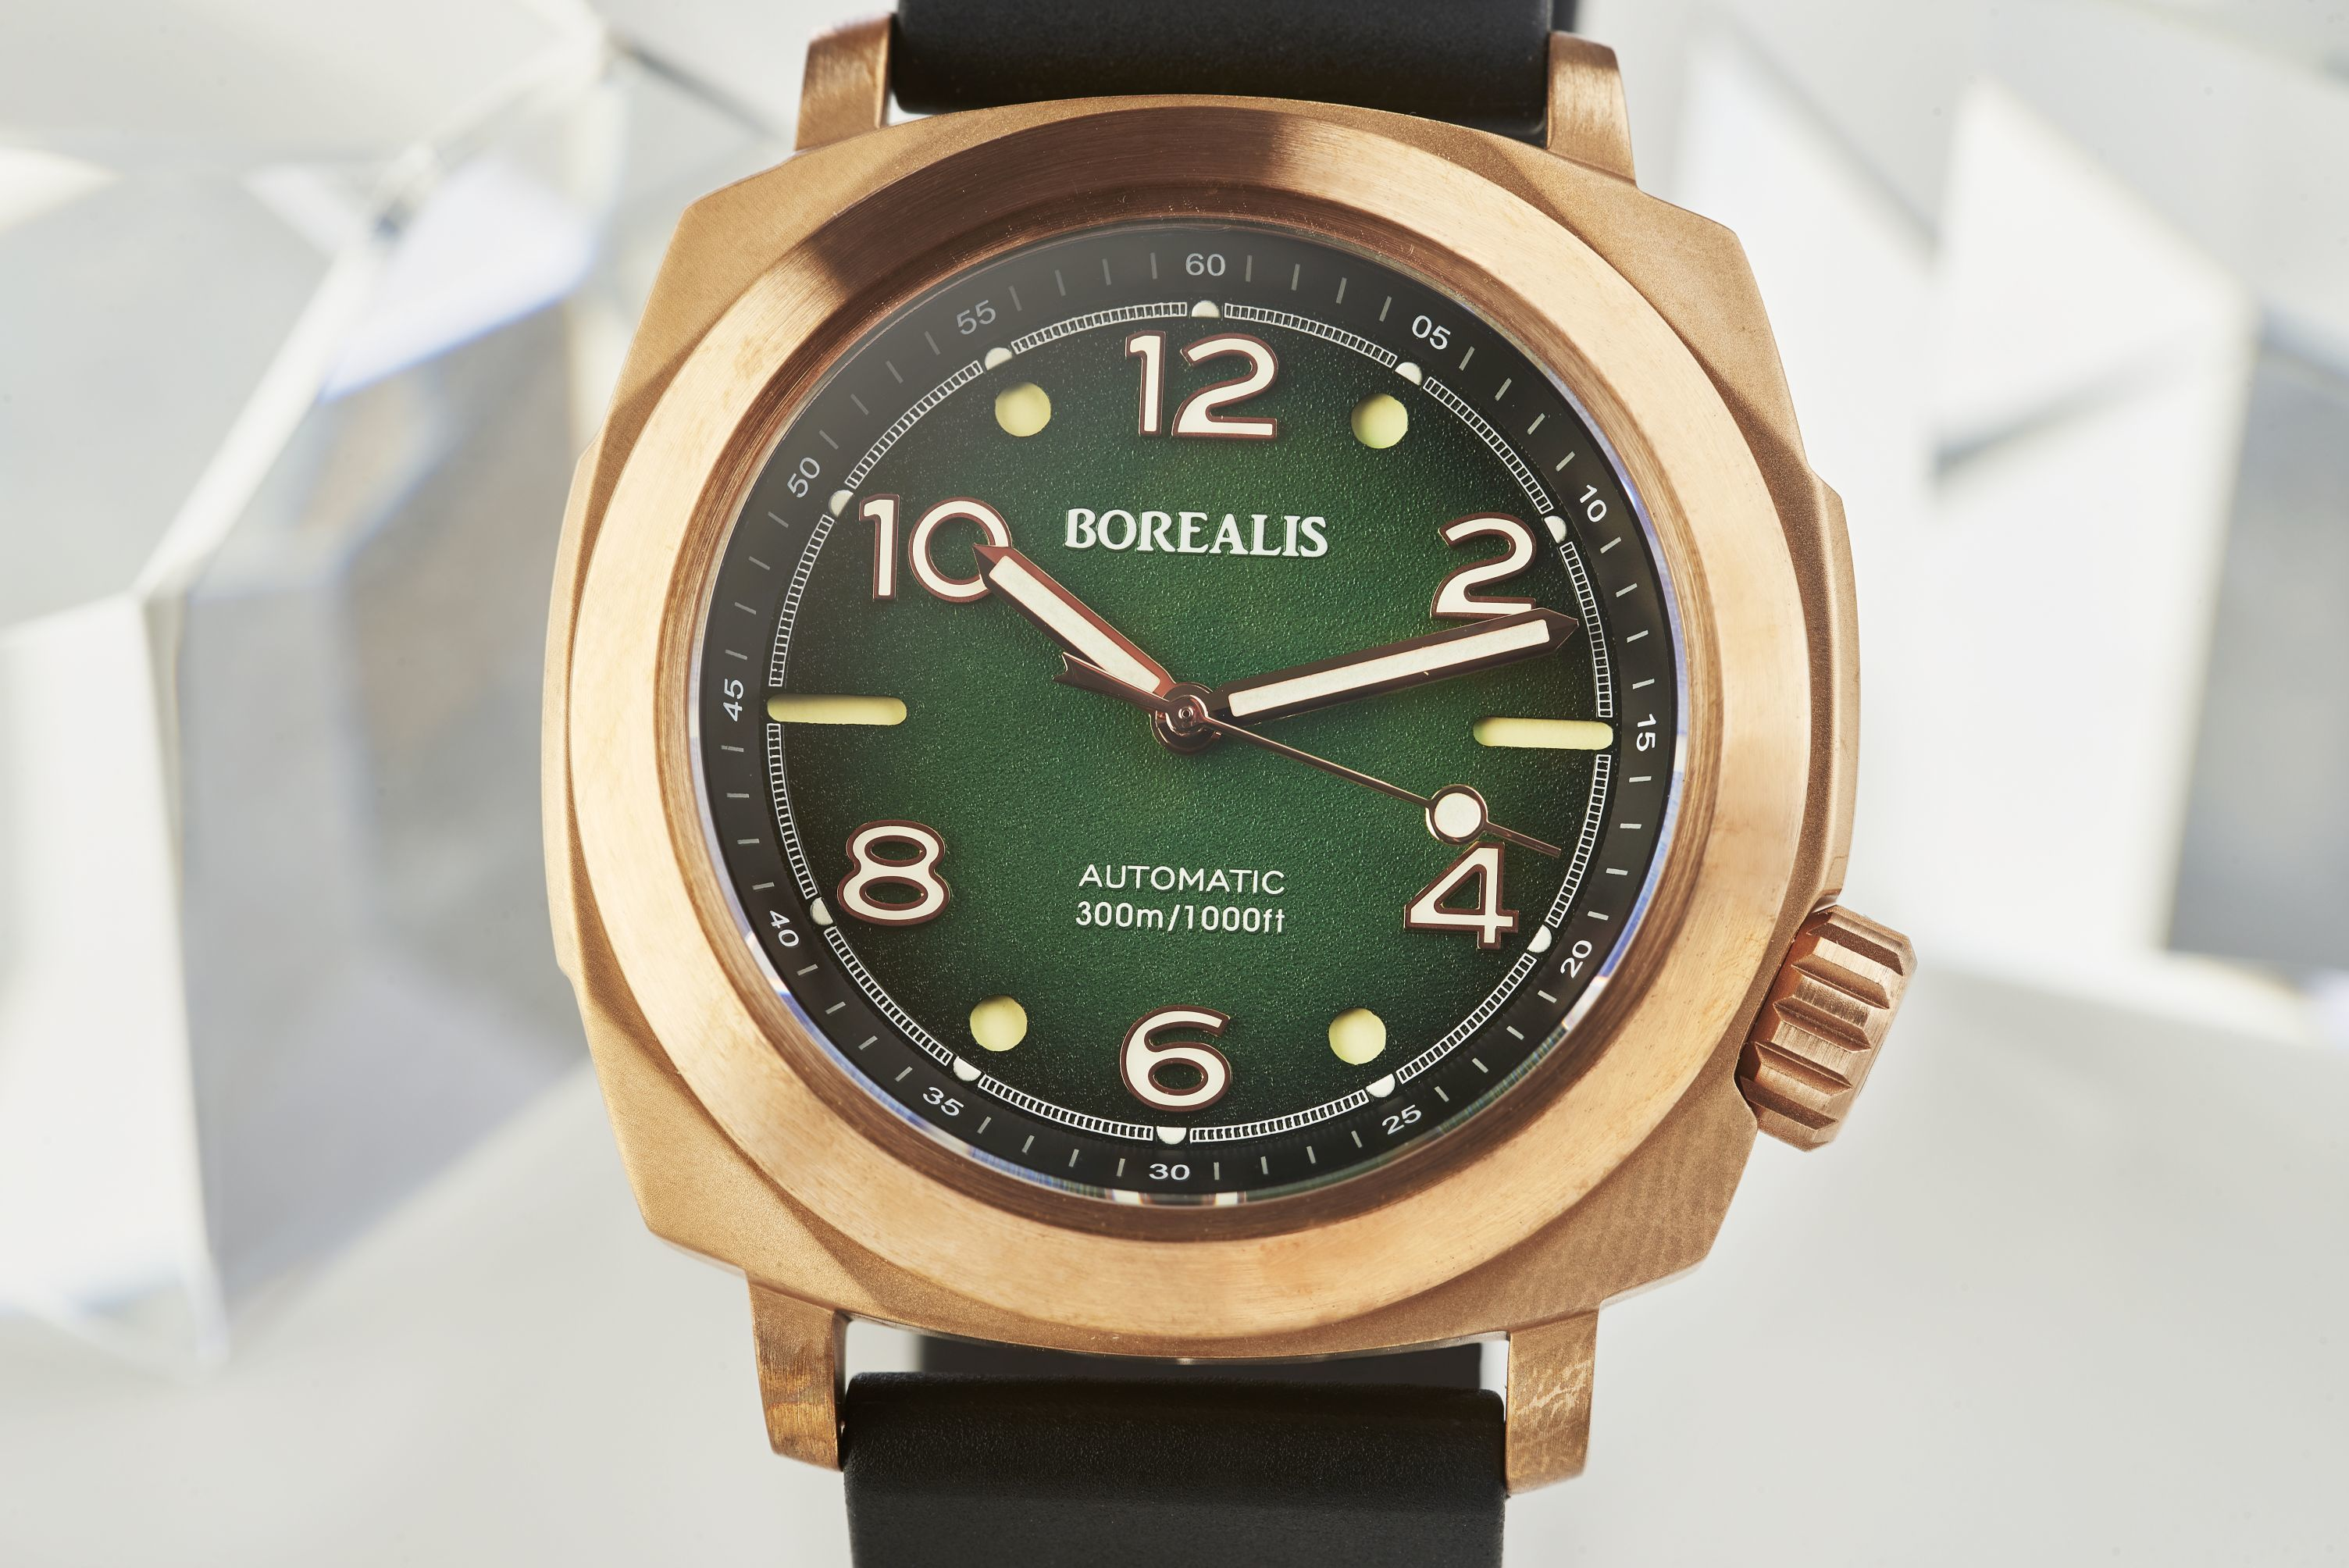 Borealis Navale CuSn8 Bronze 300m Diver Watch Miyota 9015 Fumed Green Version FF Fixed Bezel BNAVALEFFGREEN